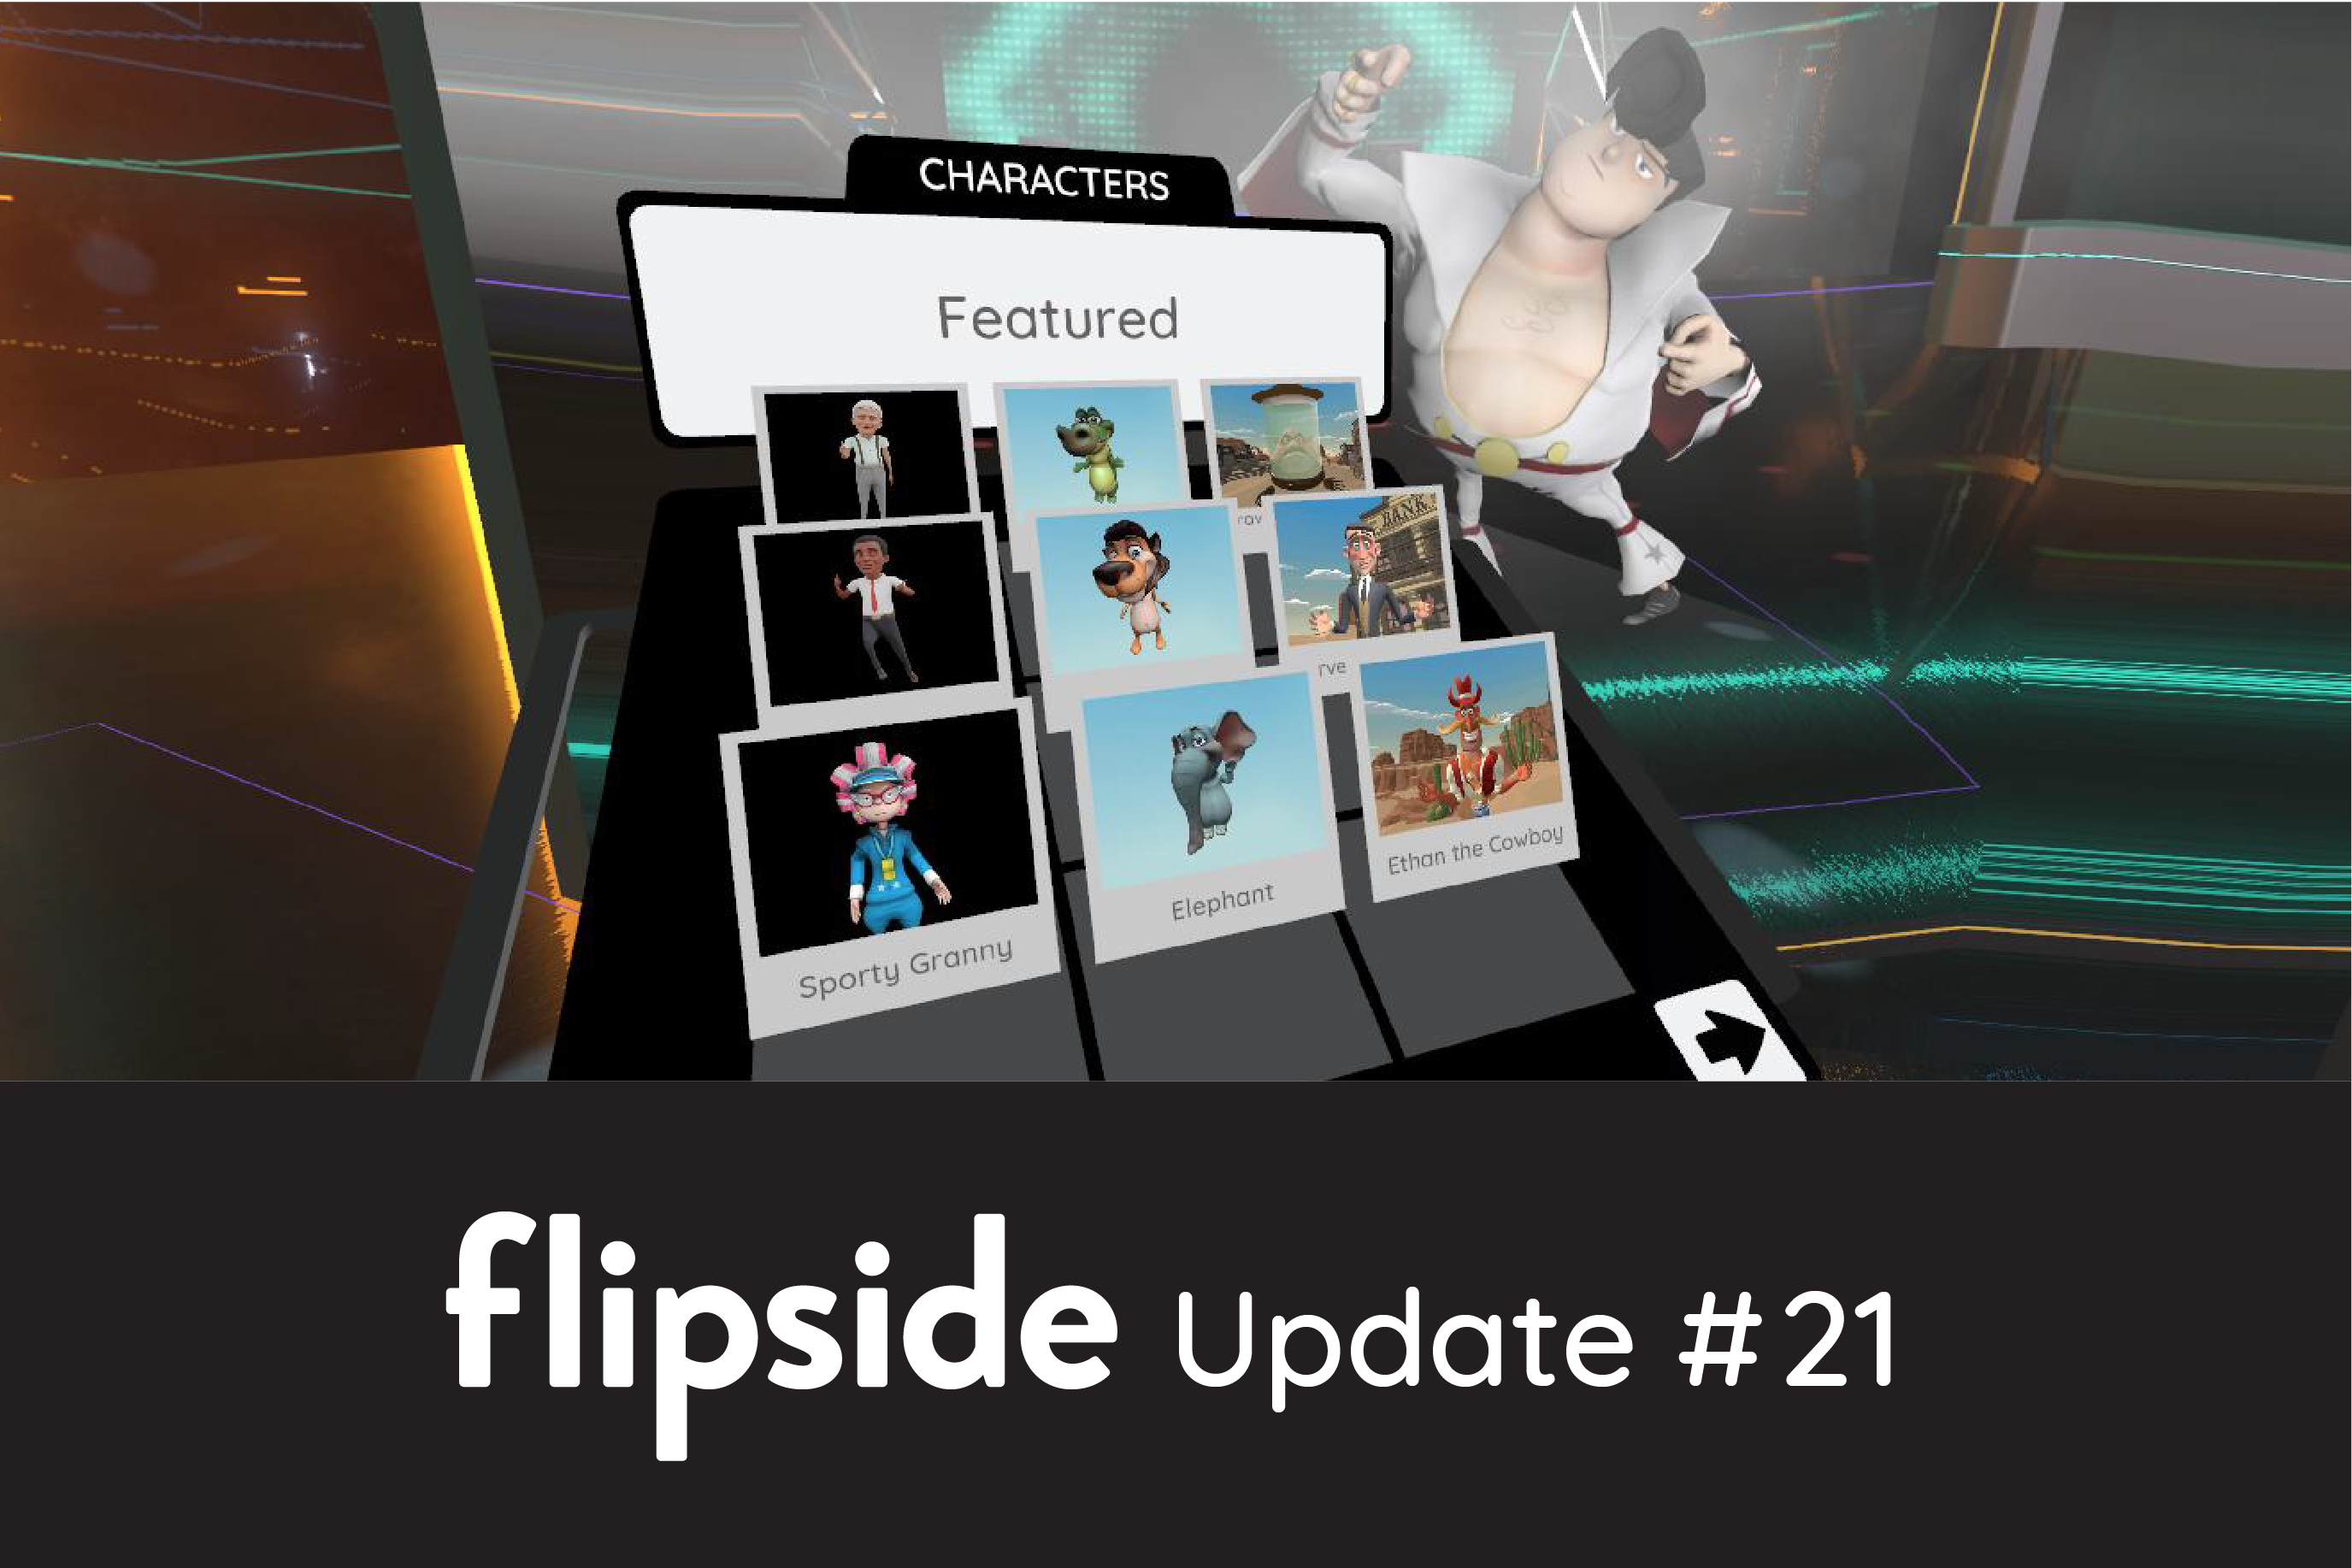 Flipside Update #21 - Faster character loading and multiplayer fixes